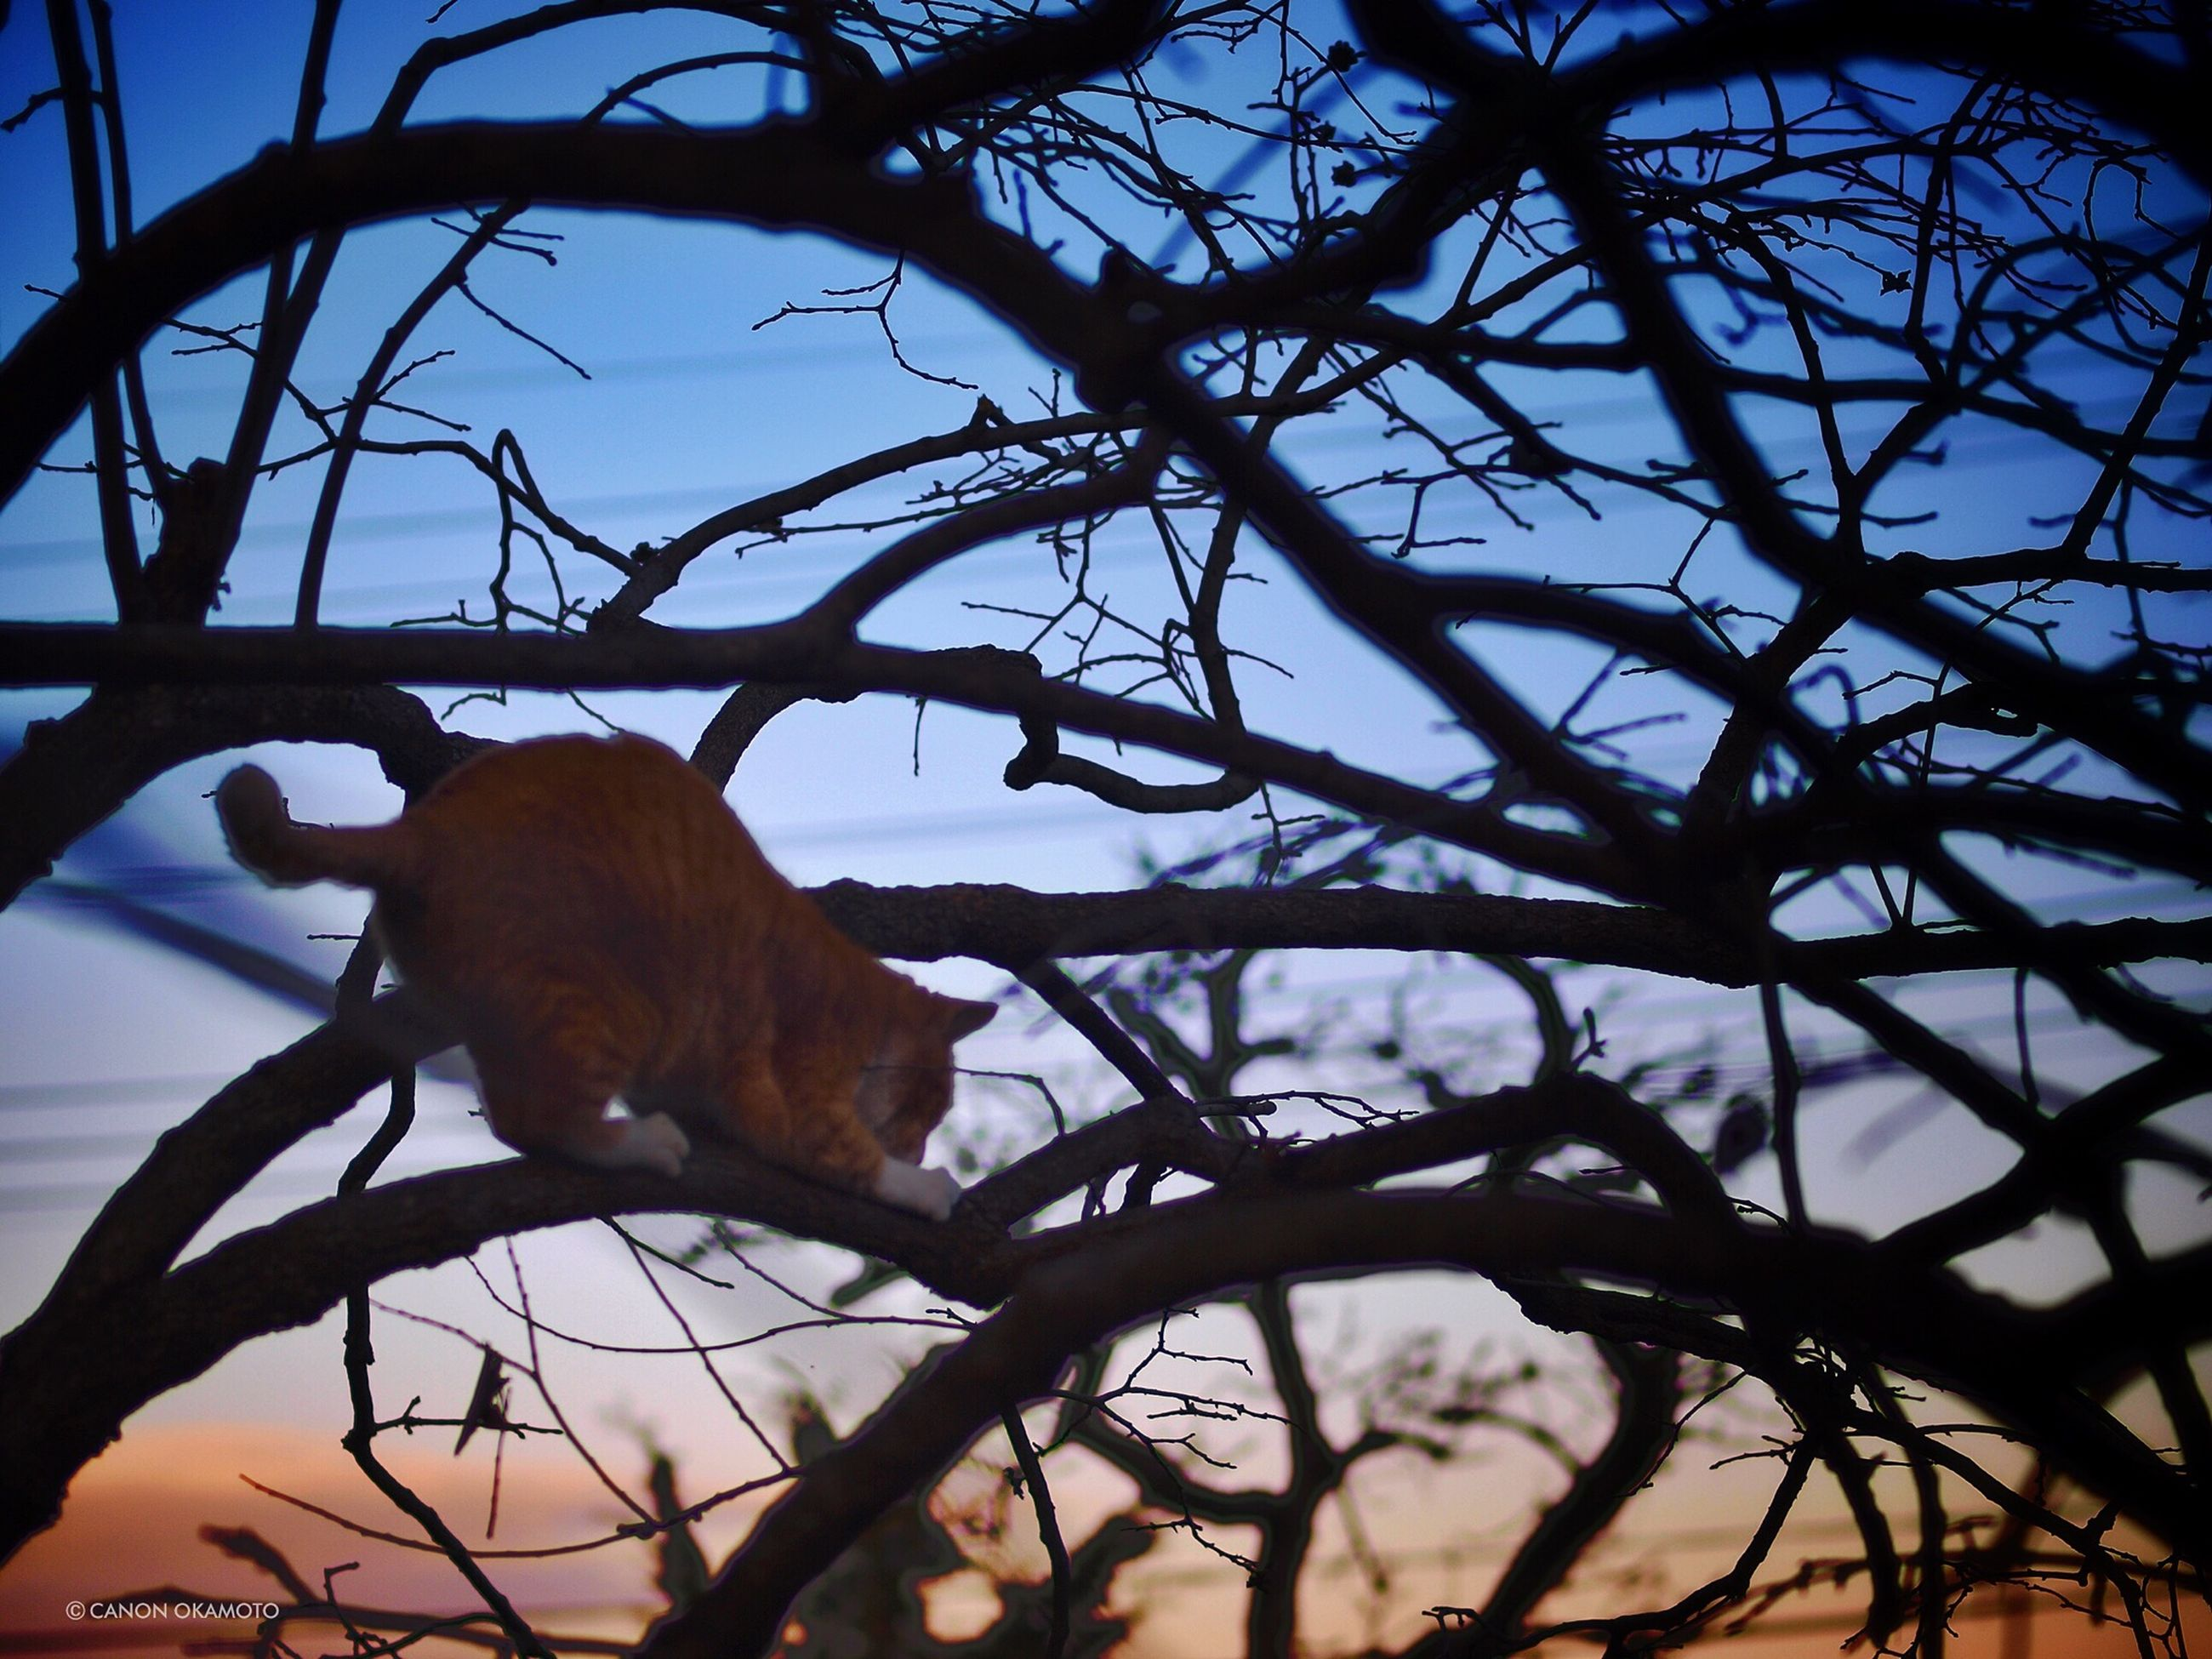 animal themes, mammal, domestic animals, one animal, pets, livestock, sunset, sky, zoology, vertebrate, brown, two animals, low angle view, tree, branch, nature, side view, horse, no people, wildlife